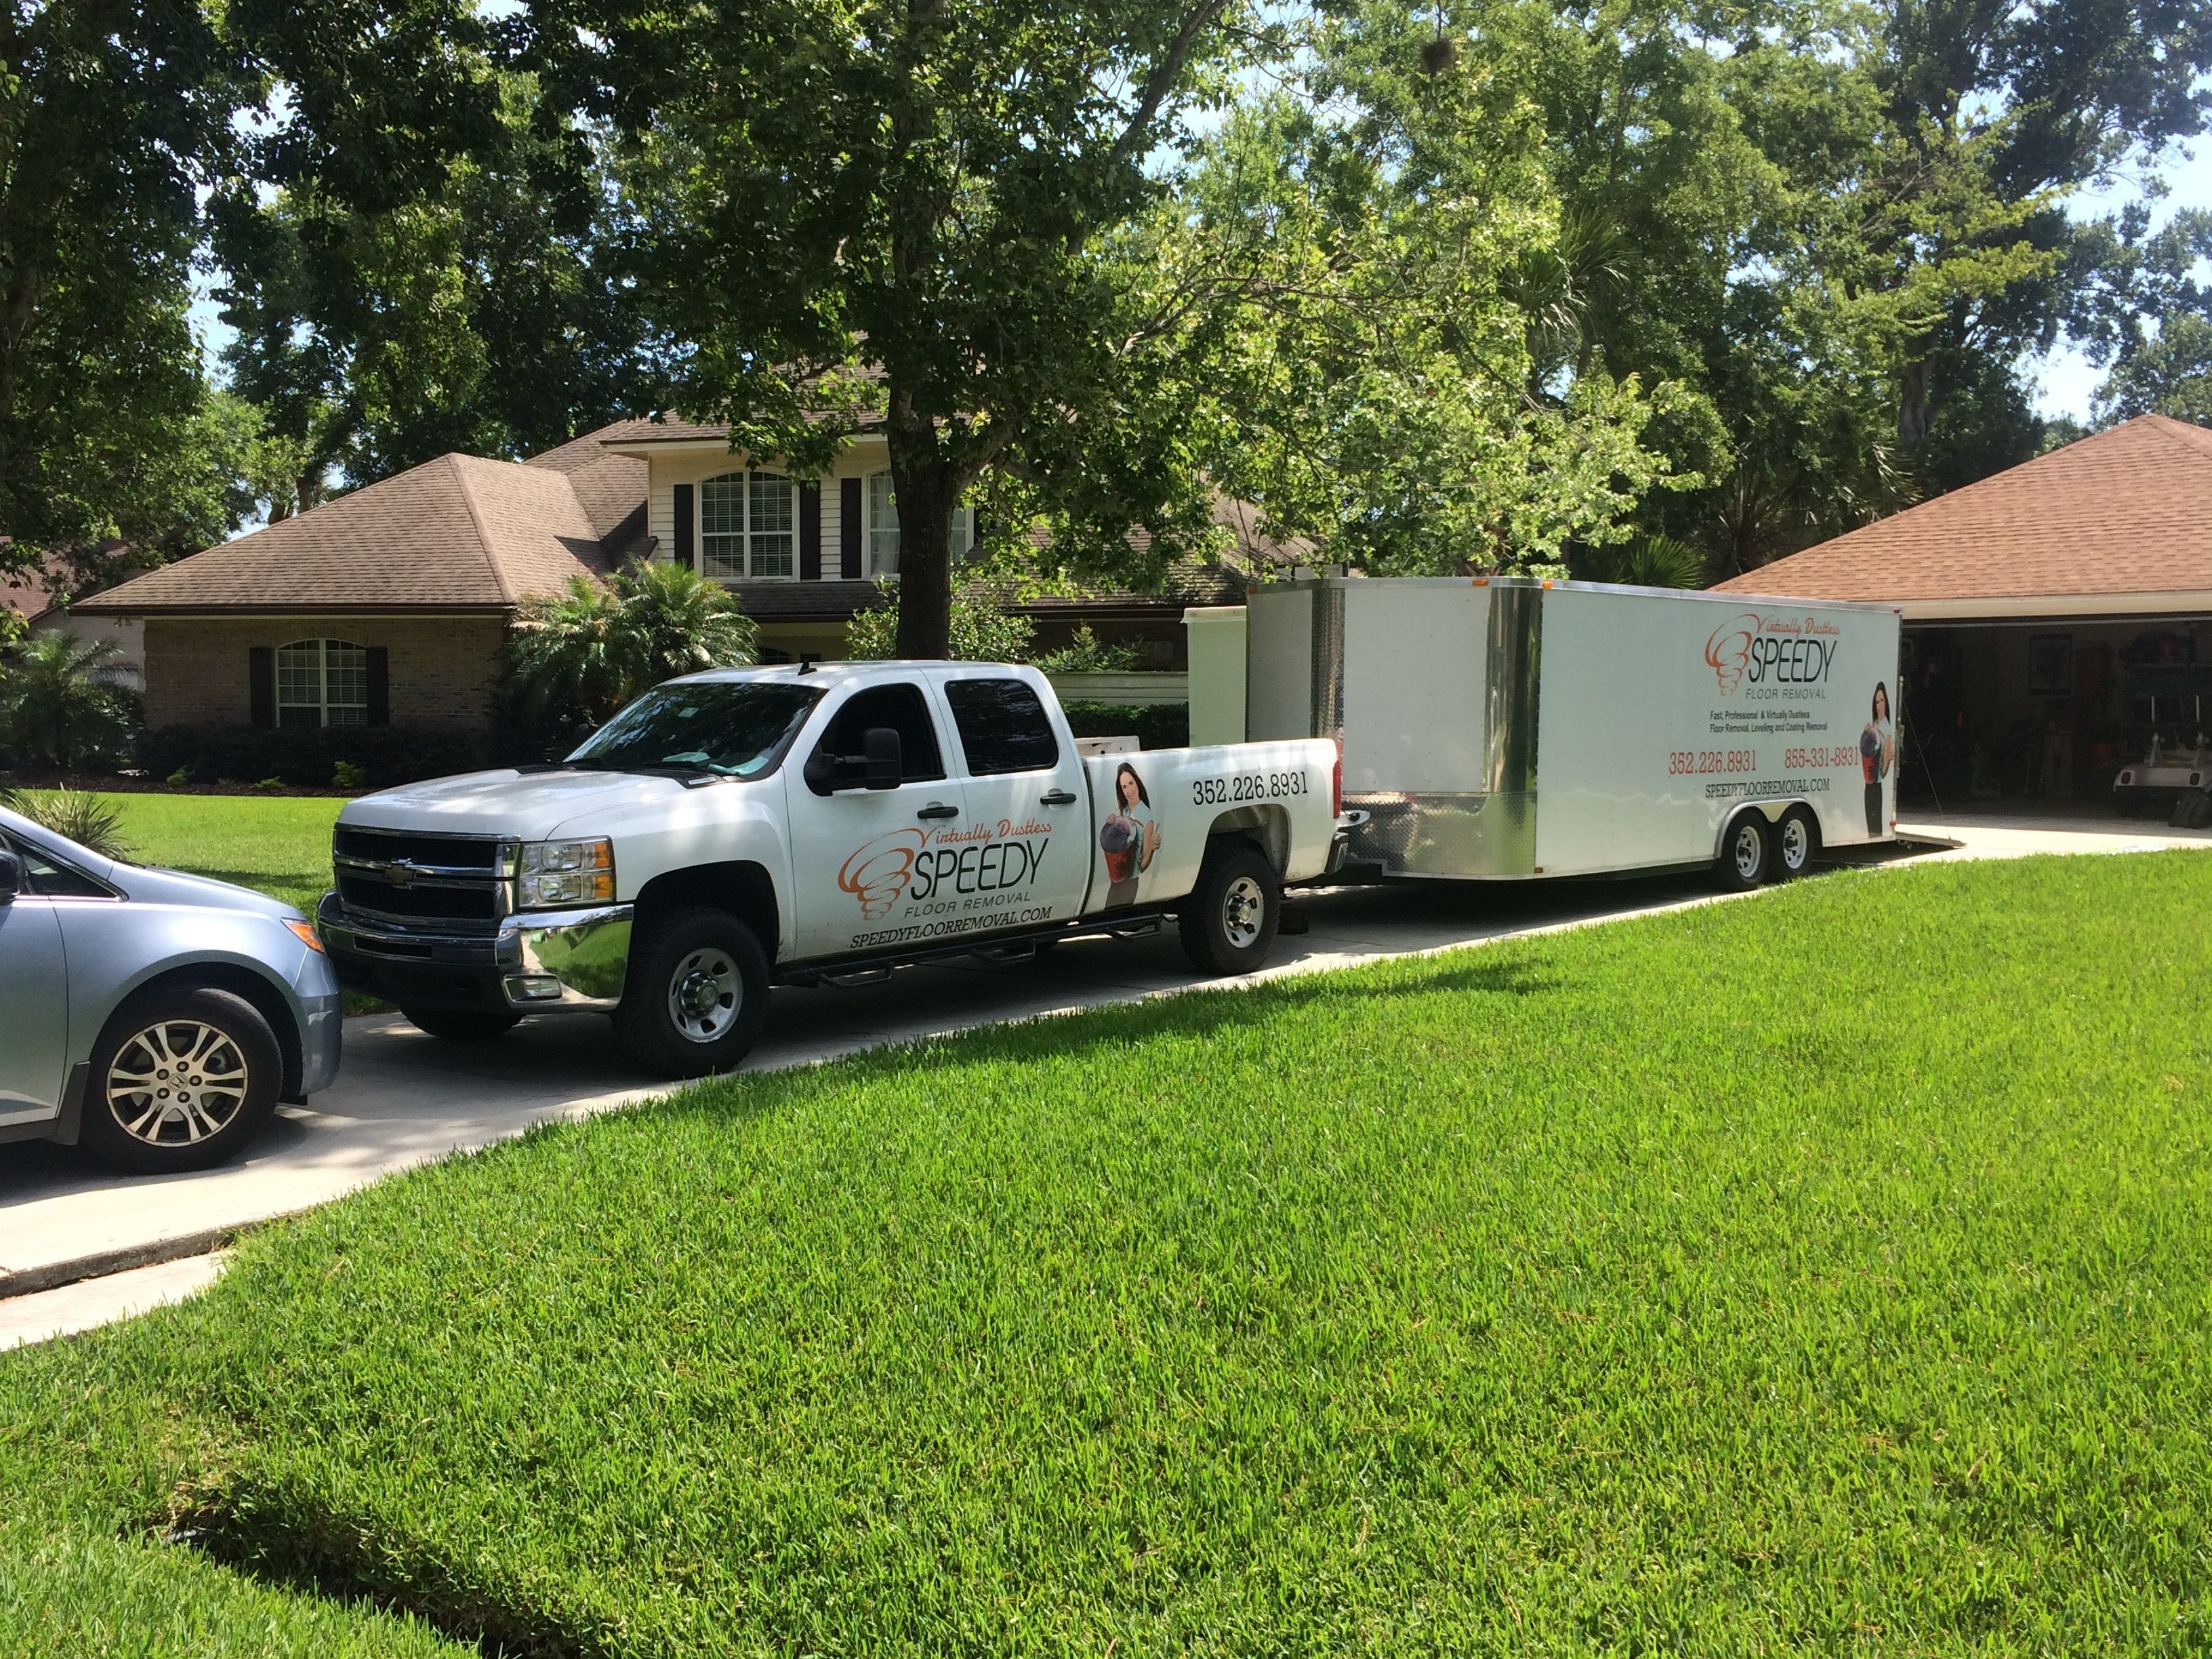 Image of a Speedy Floor Removal branded truck and trailer outside a residential home